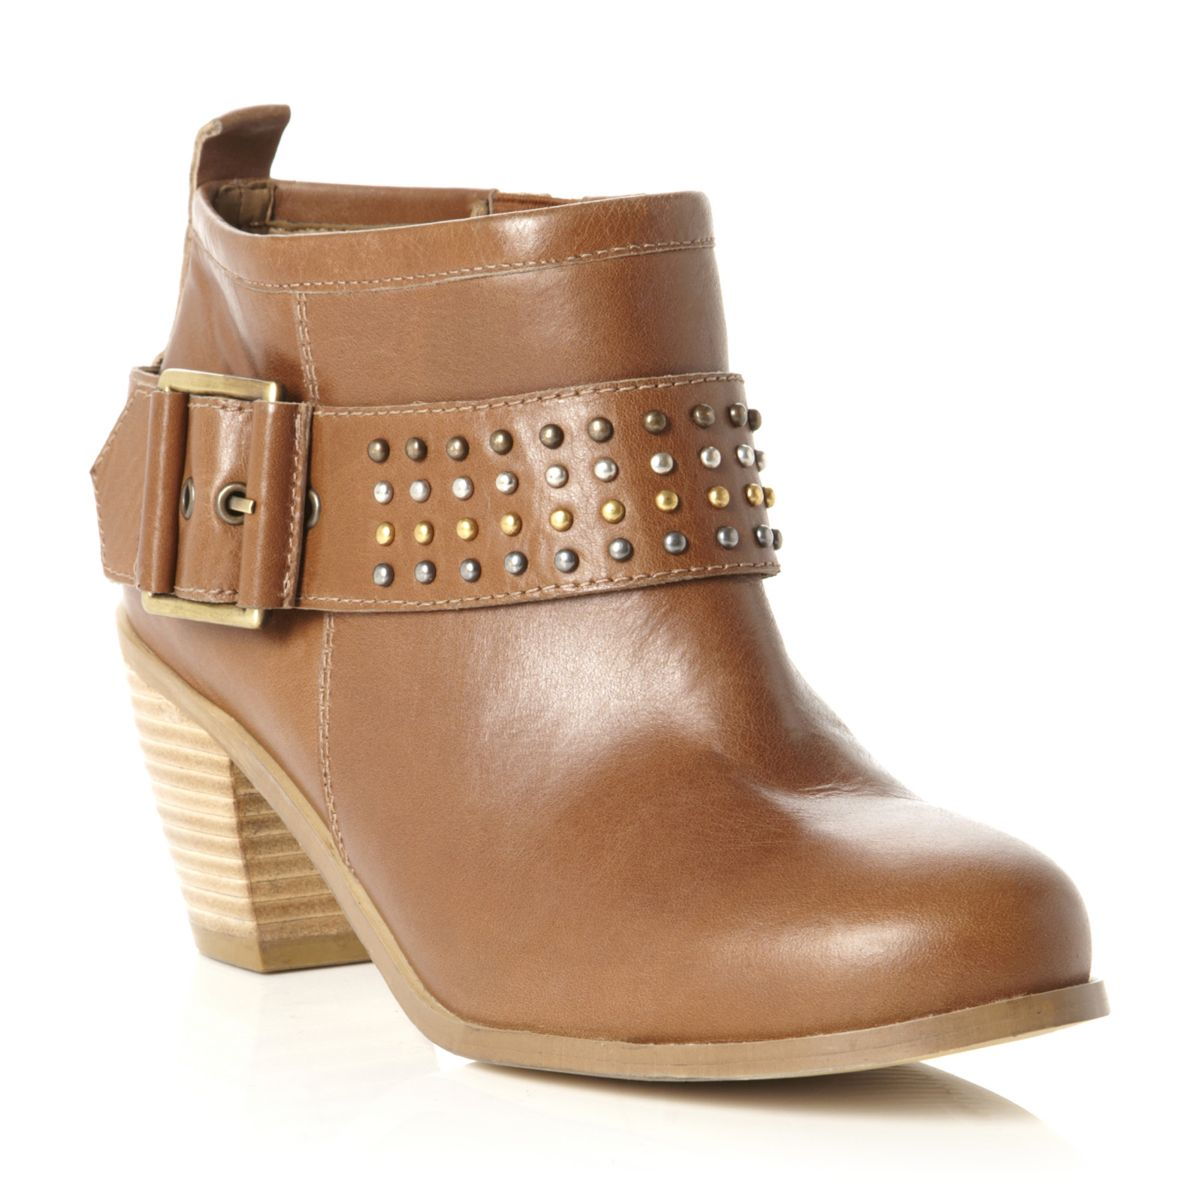 Brown Ankle Boots For Women JsjhZjnT